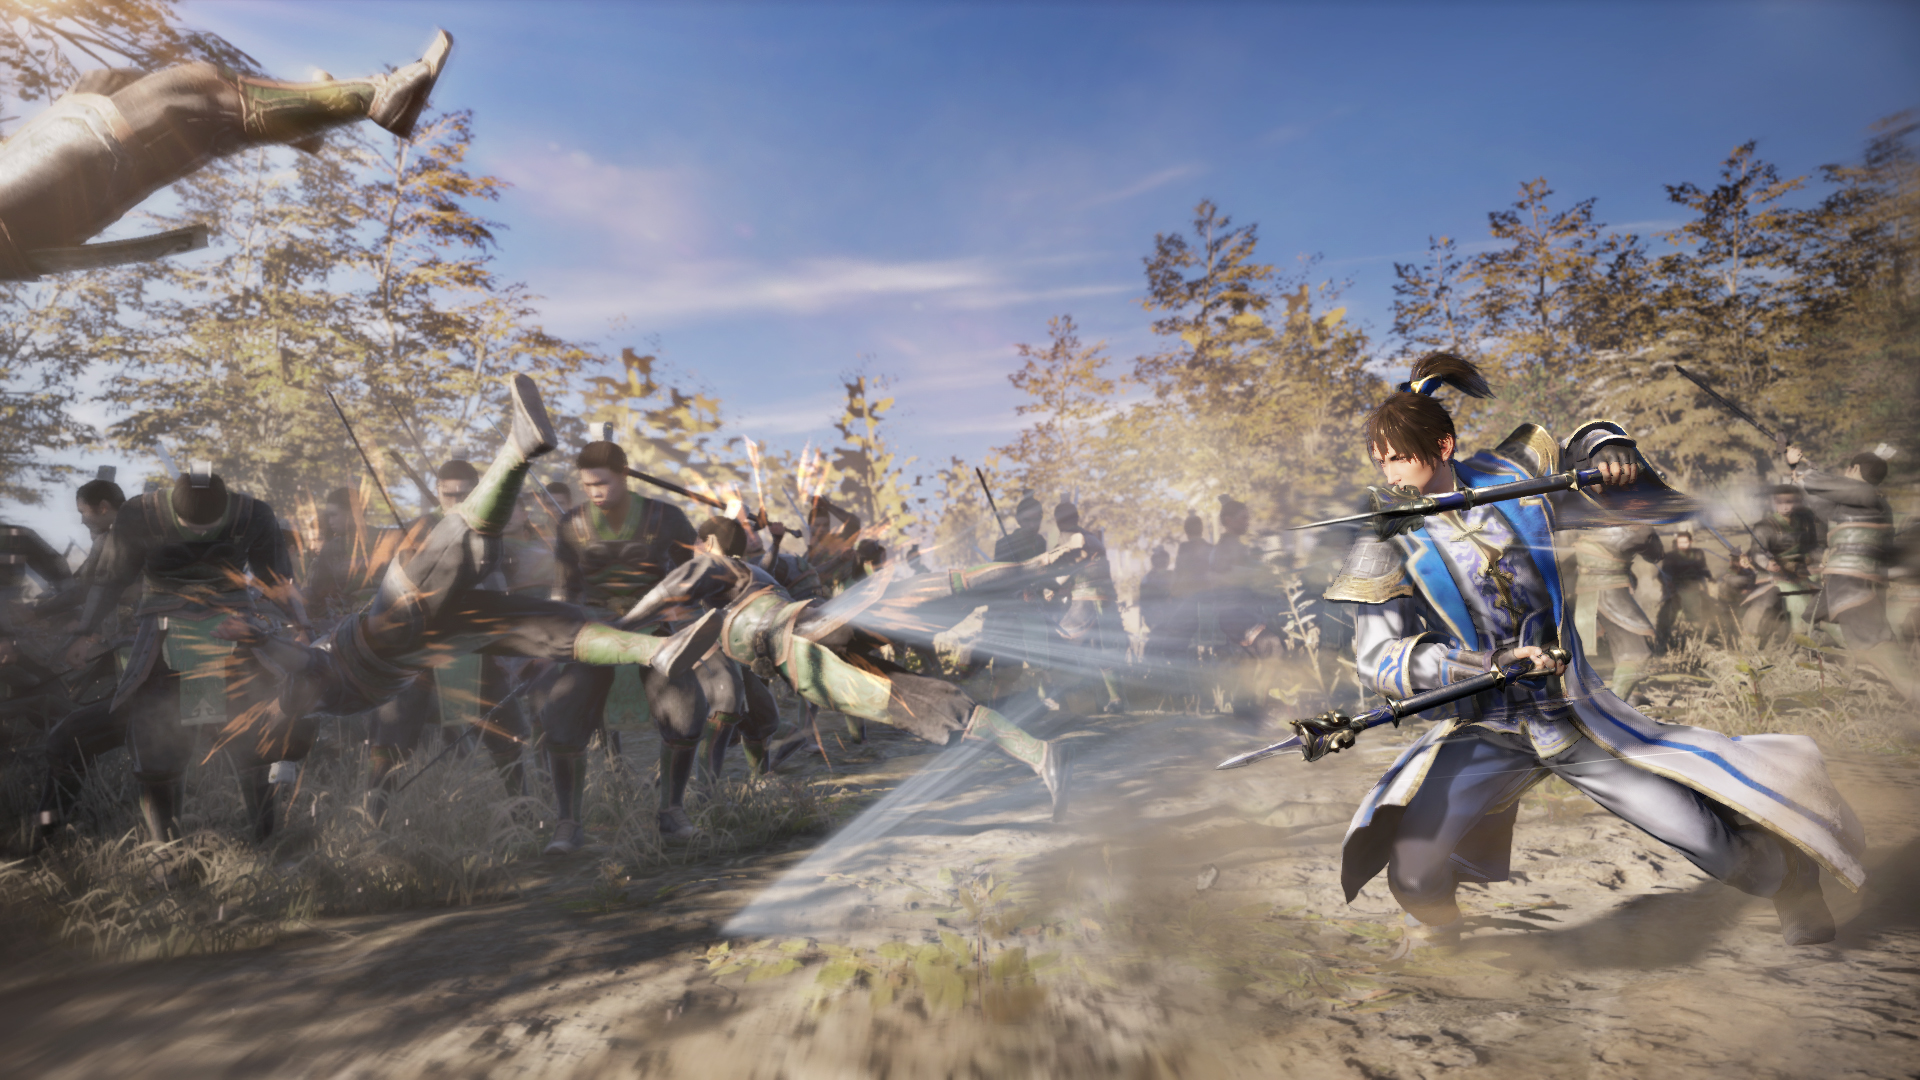 Dynasty Warriors 9 PS4 Patch Being Worked On To Fix Frame Rate Issues